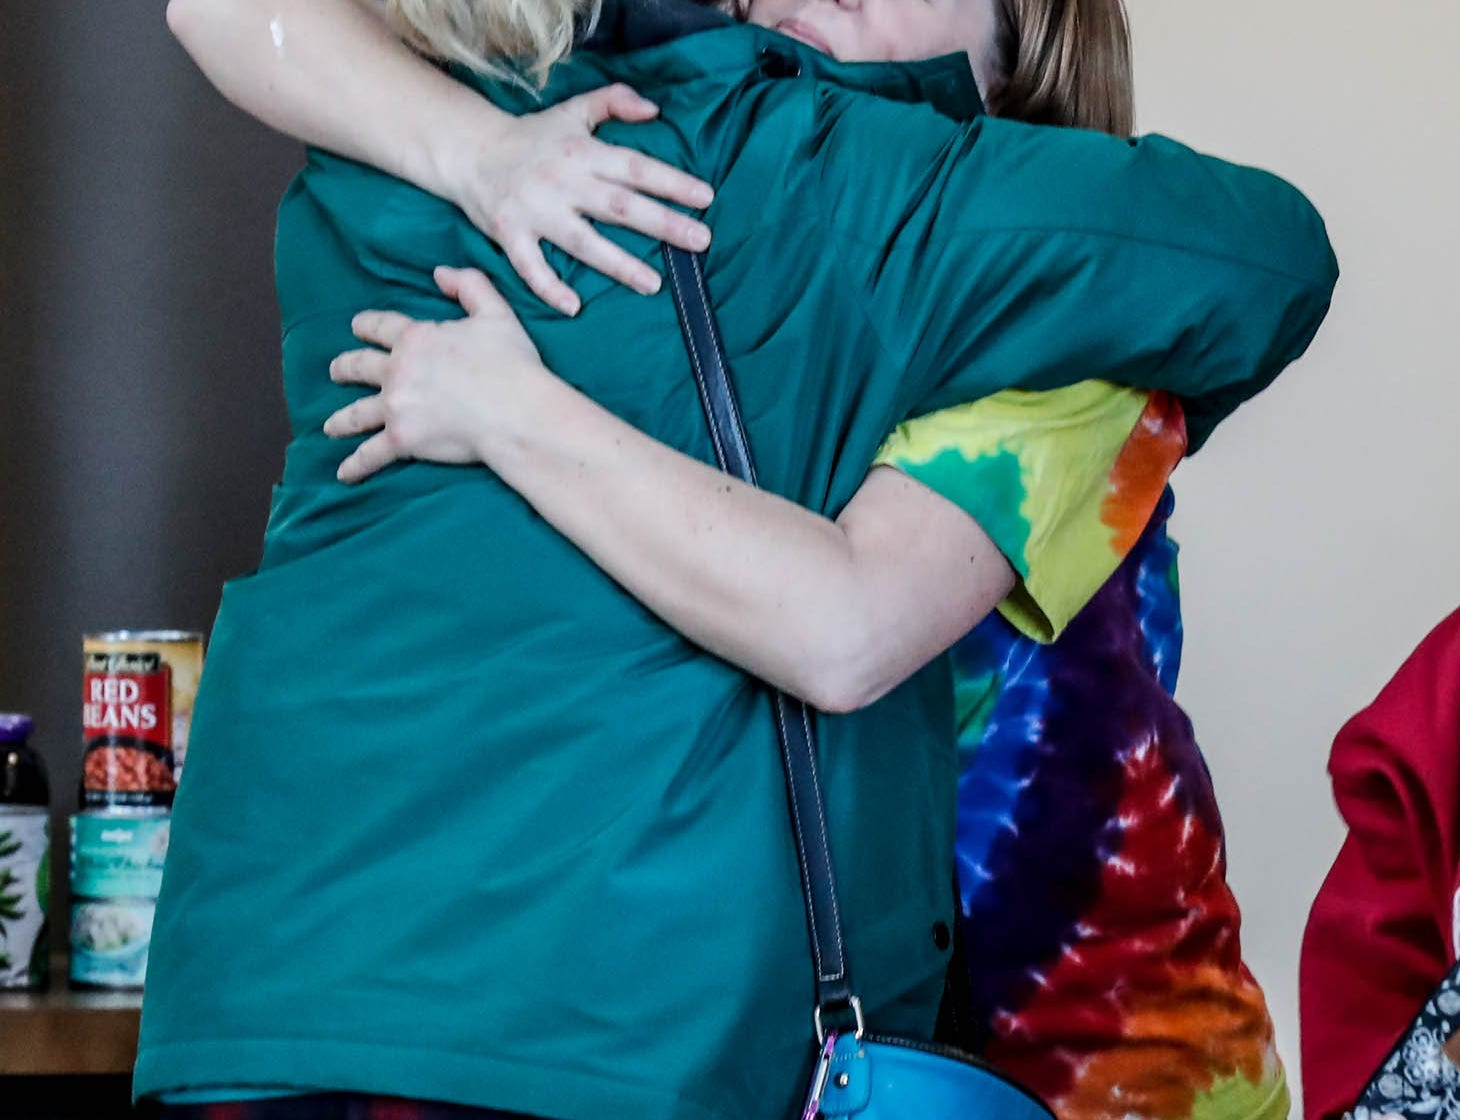 Anna Williams, right, the mother of Abby Williams, hugs Kim O'Leary, left, before a community prayer remembrance at Delphi United Methodist Church 1796 US-421, on Wednesday, Feb. 13, 2019. Two years after Delphi's Abby Williams and Libby German were murdered, the case has not been solved.